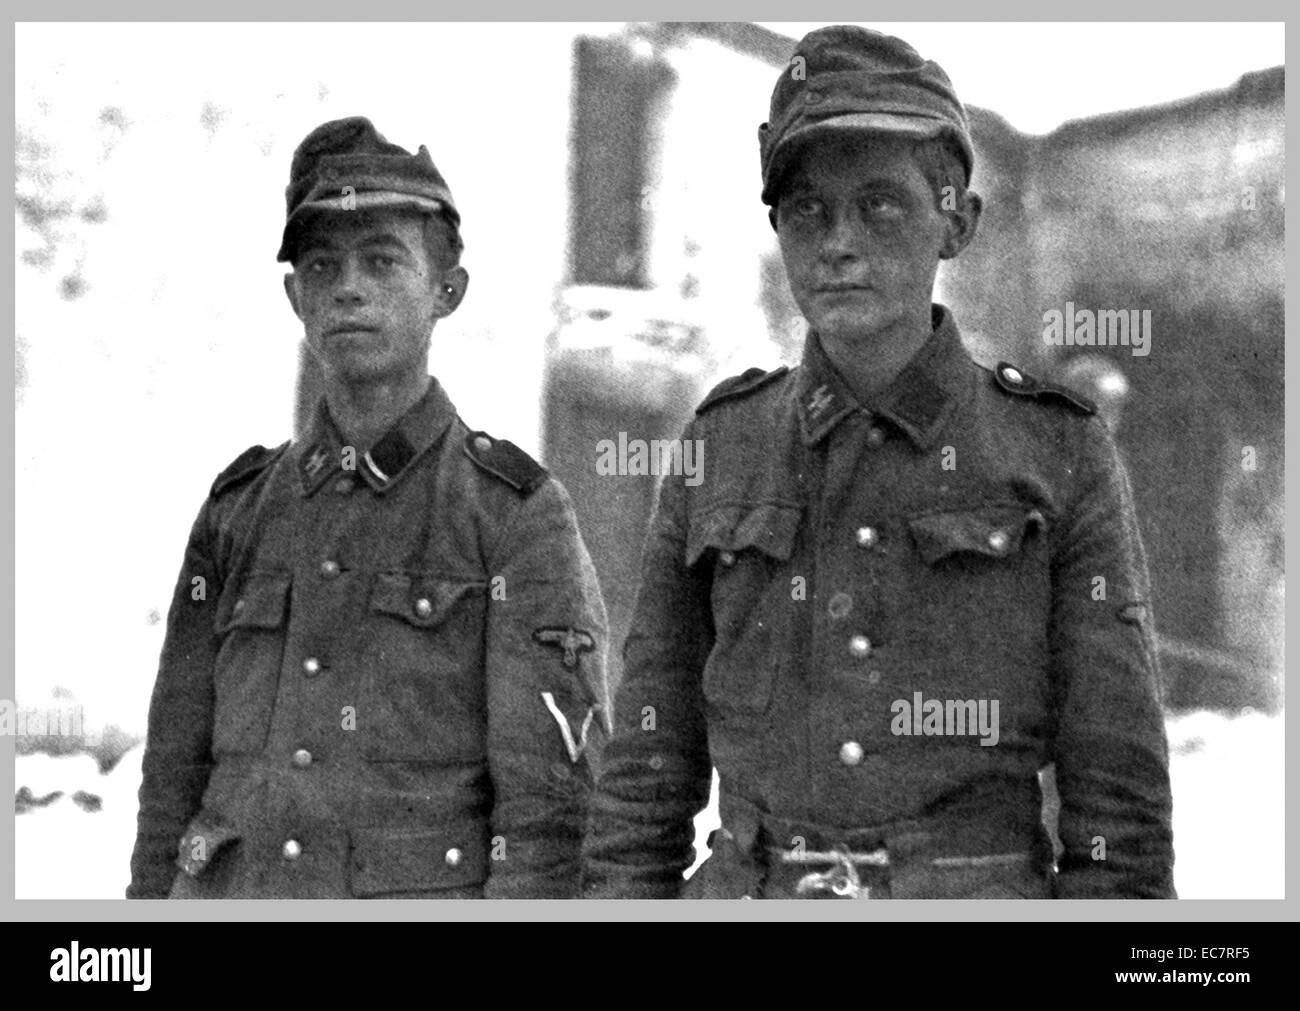 Captured soldiers from the 12th SS Panzer Division of the Hitlerjugend - Stock Image